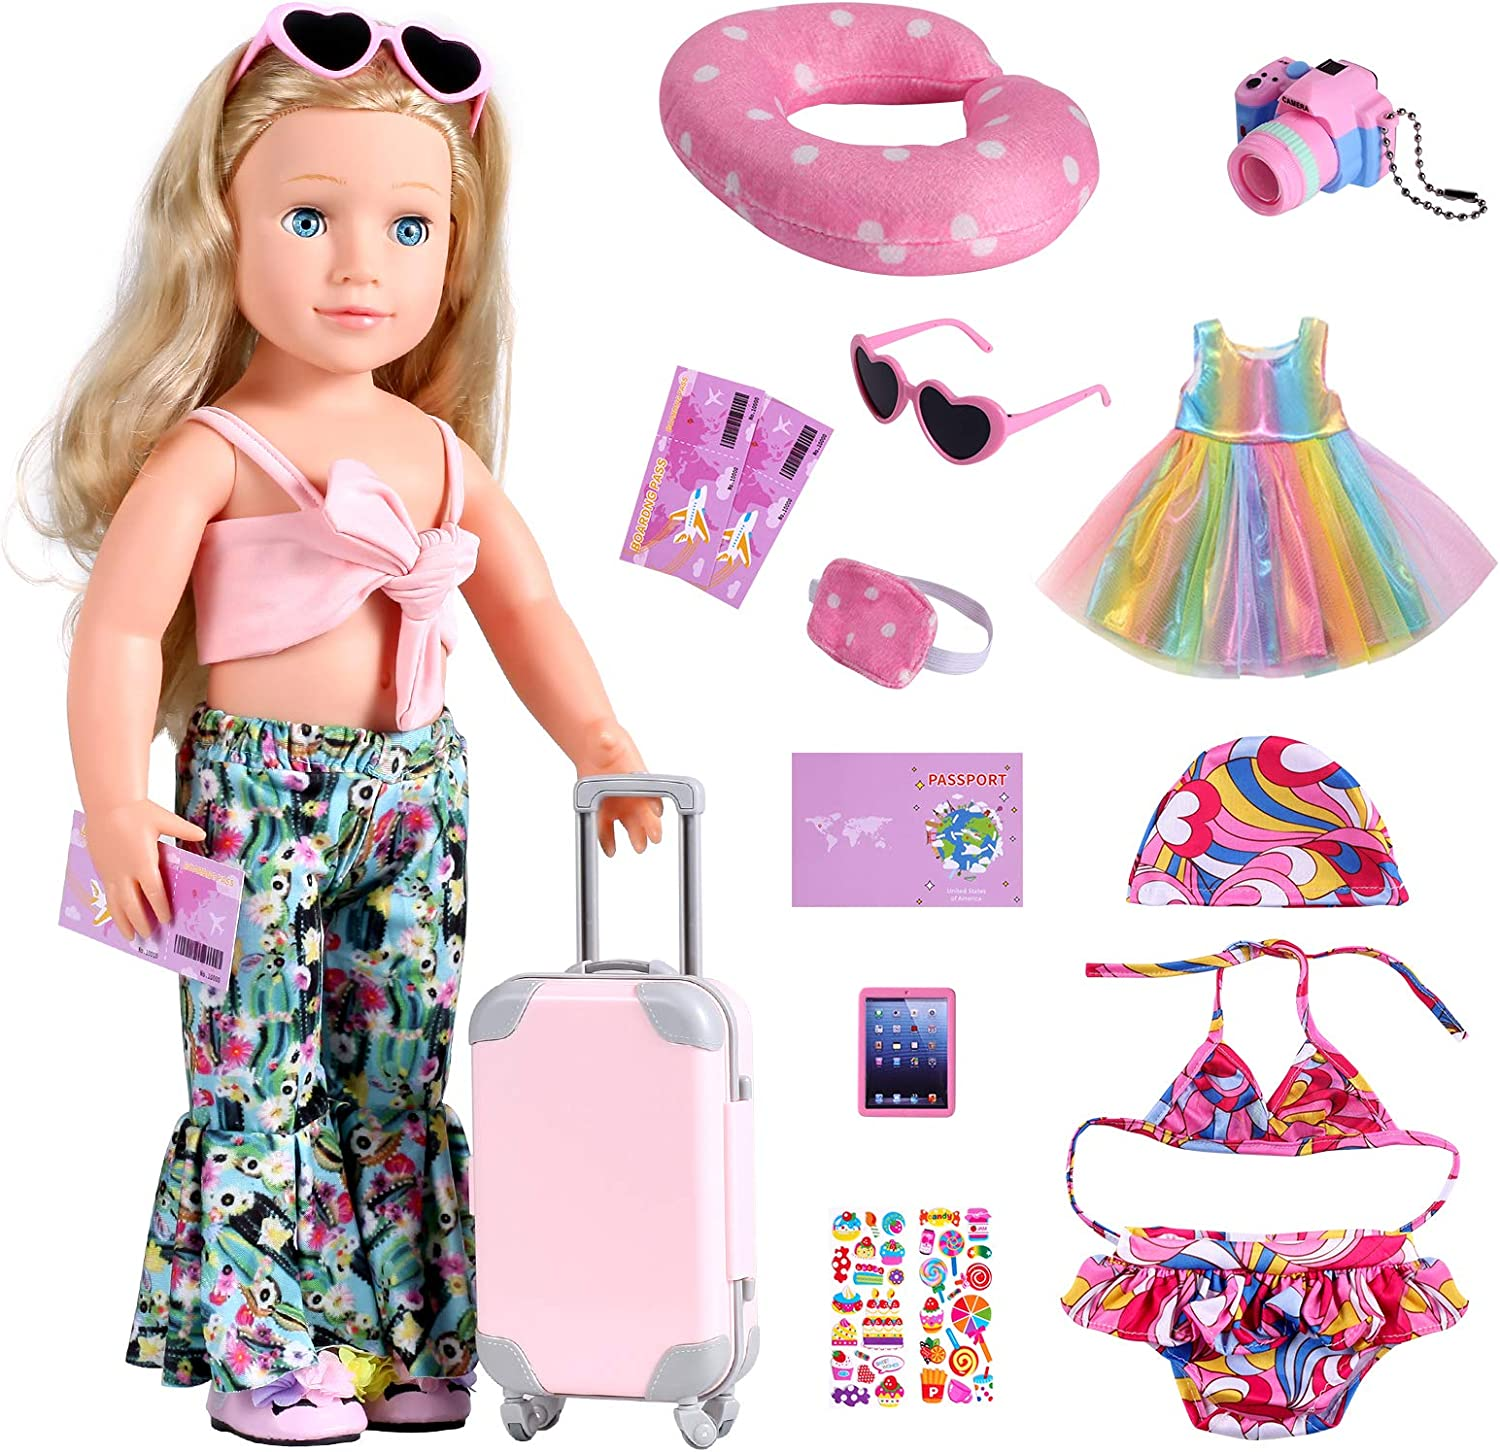 Bernito 18 Year-end annual account Inch Doll Accessories Including Play Set Translated Gear Travel